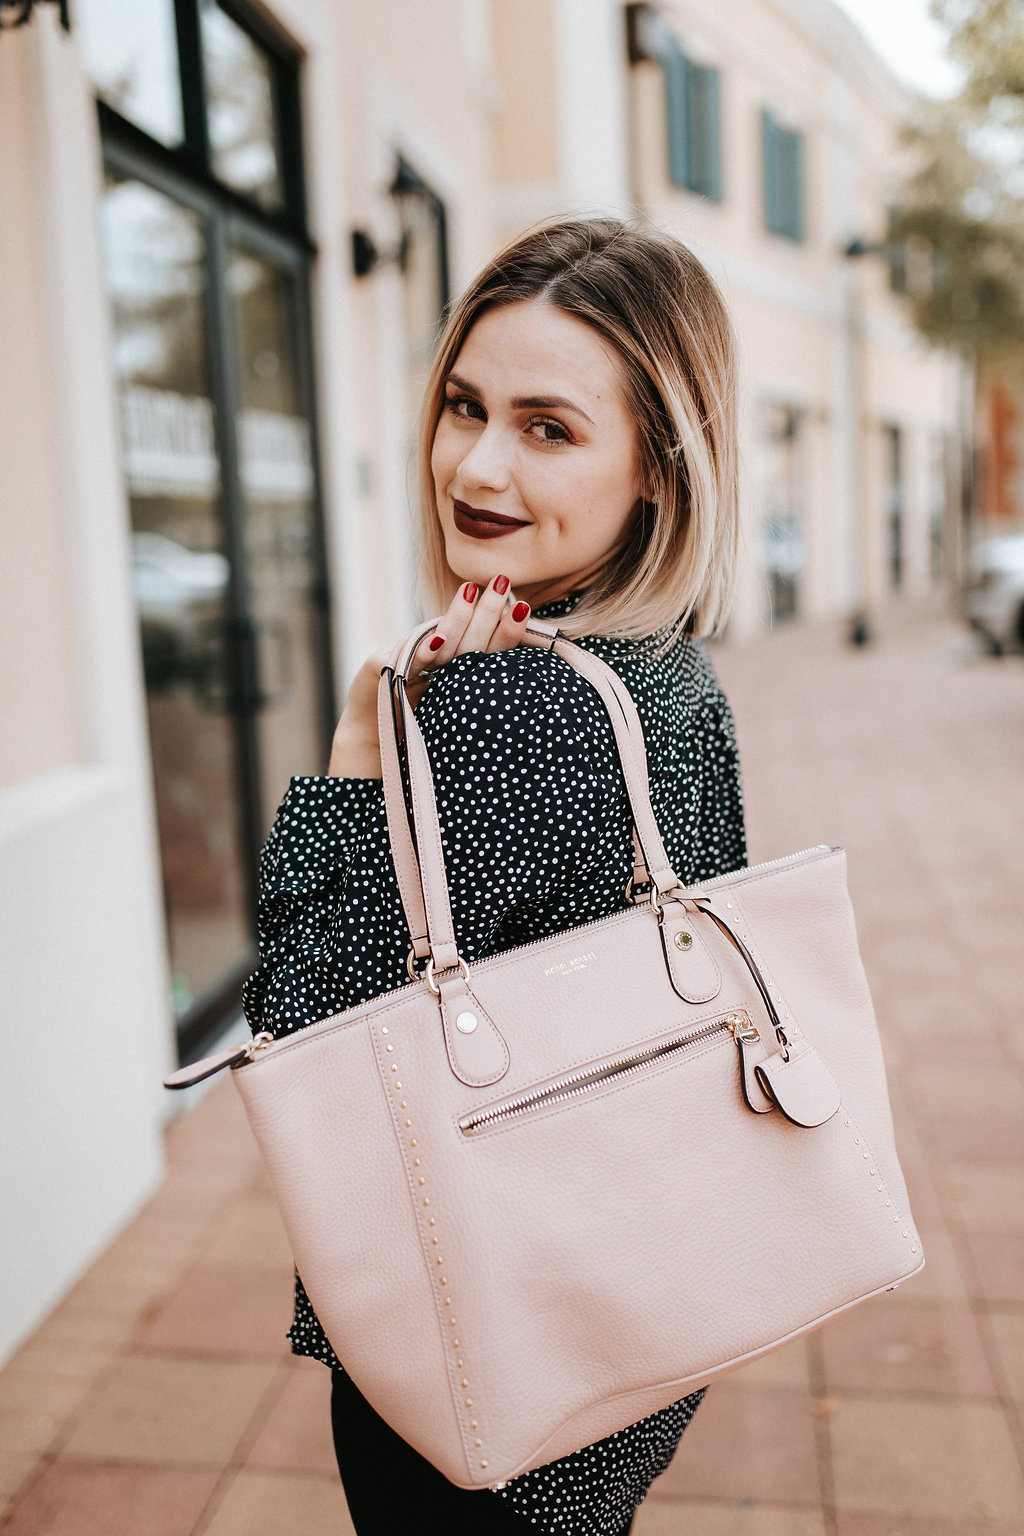 Lulu's Polka dot shirt | Fall outfit | Uptown with Elly Brown